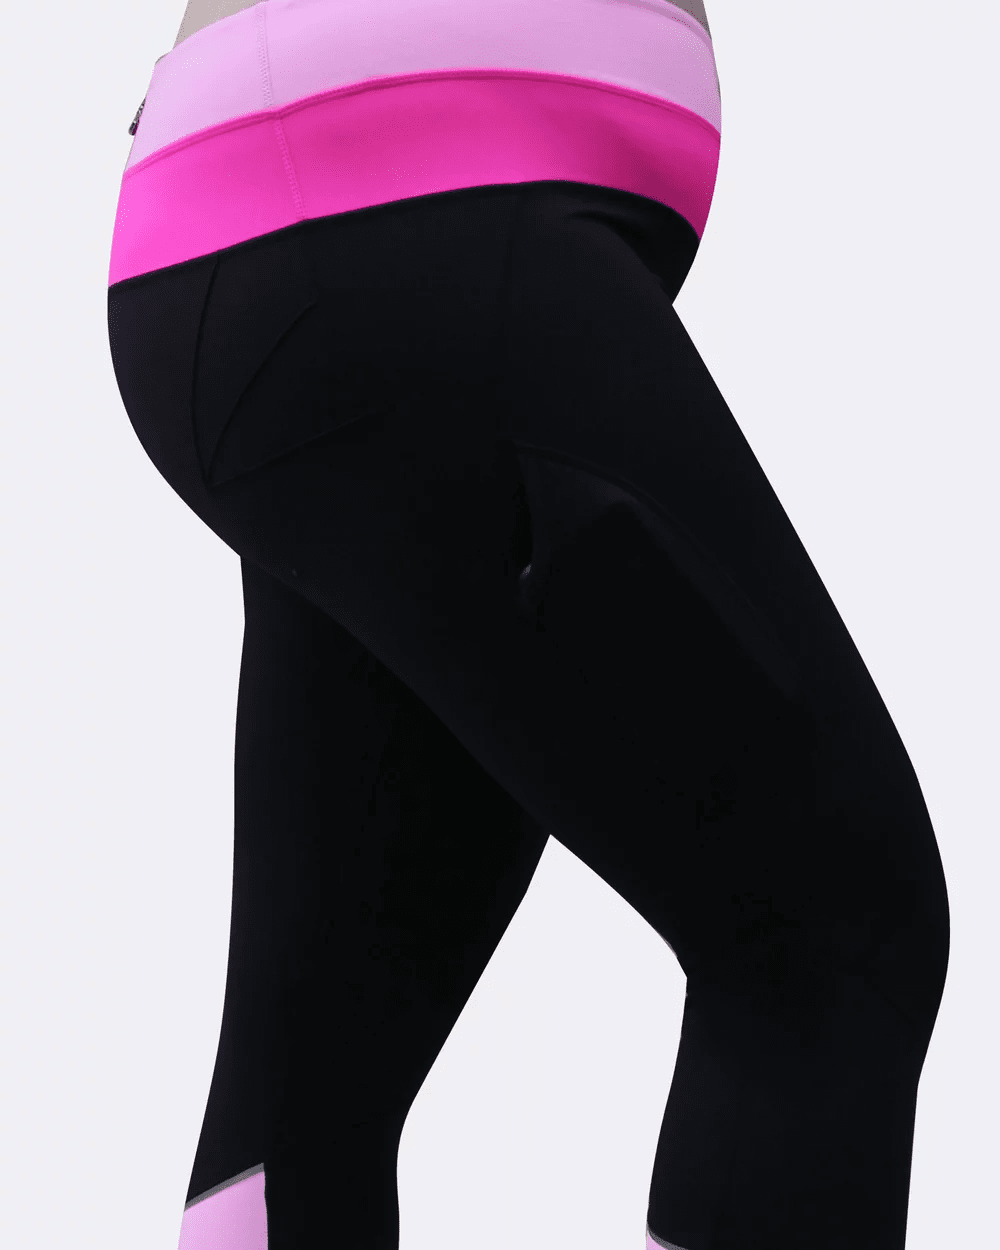 Curvy Chic Compression tights Two Tone Sculpt Pocket Tights